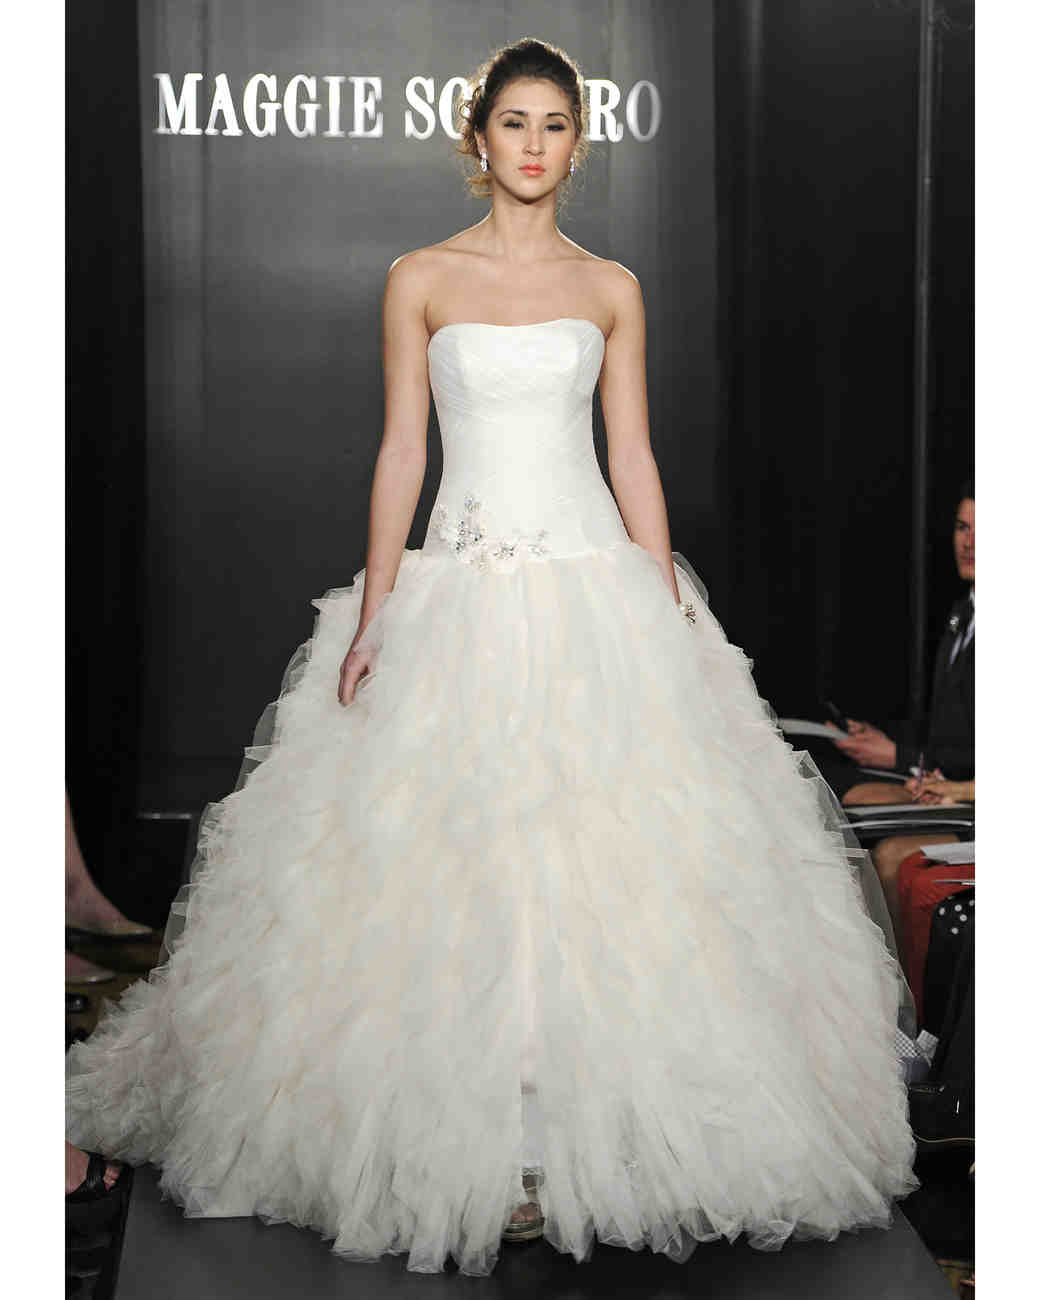 Maggie Sottero 2013 Bridal Collection | The FashionBrides